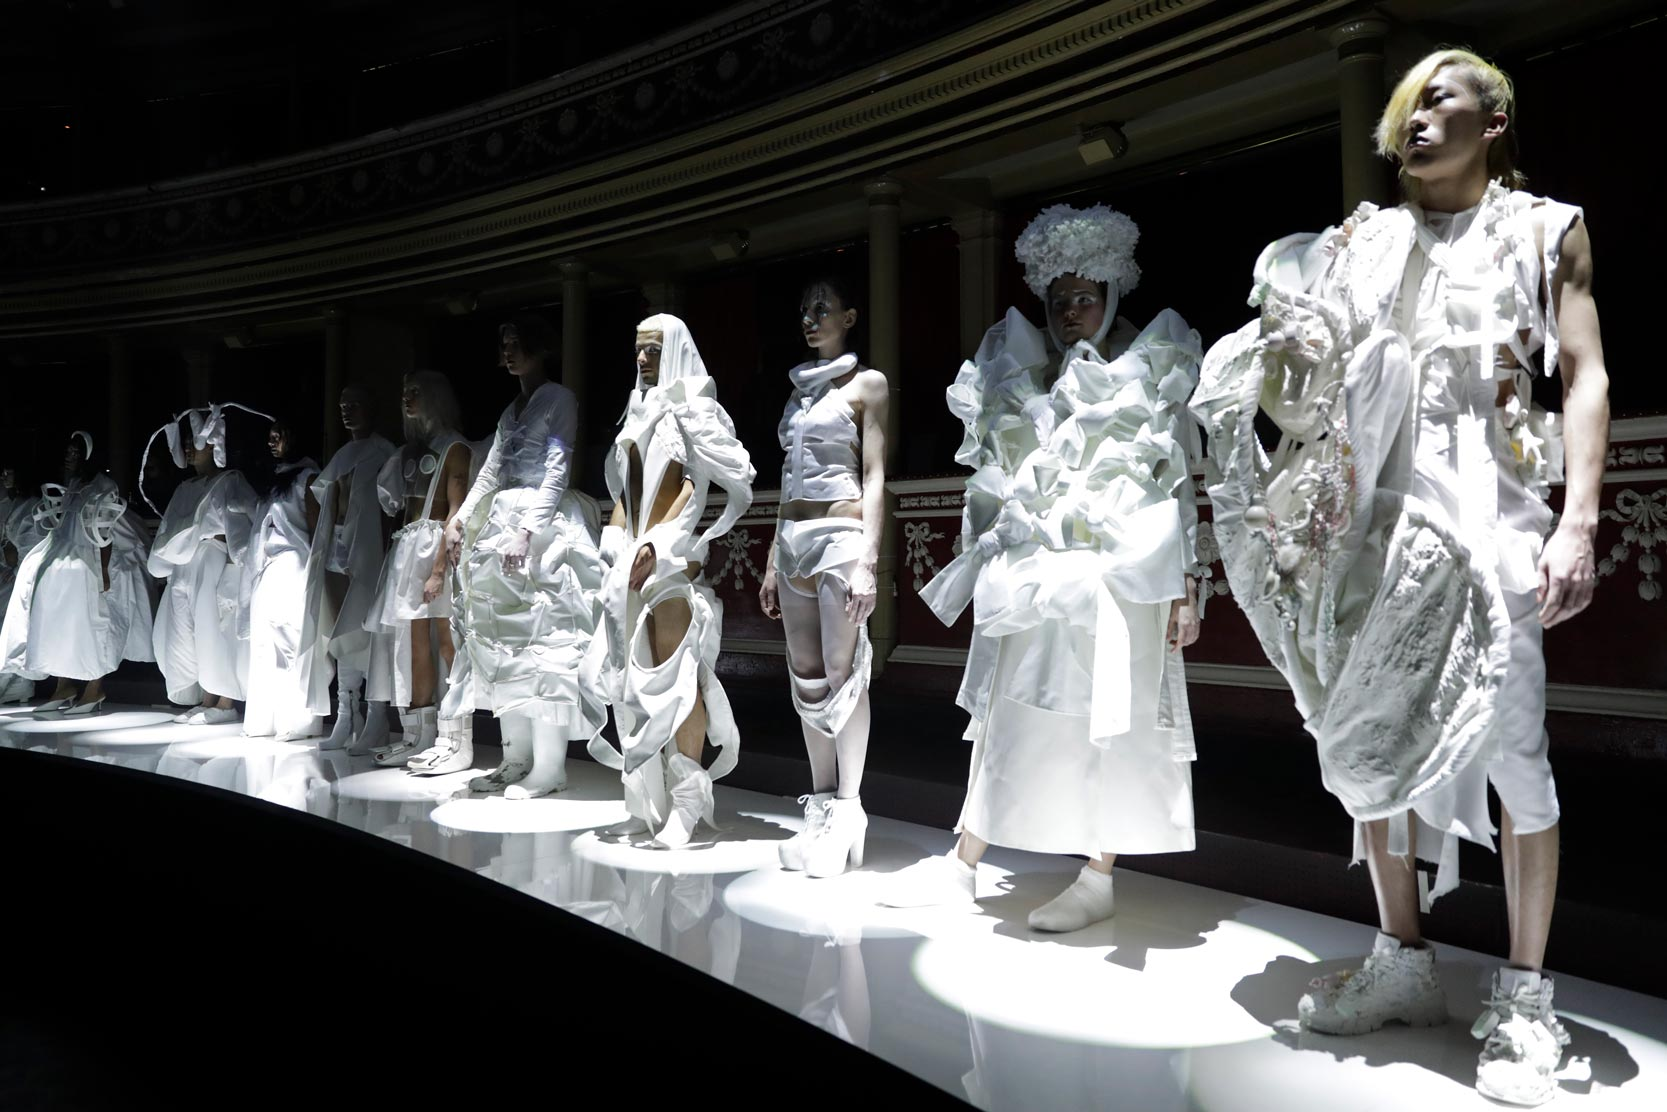 Models wearing white garments standing along catwalk